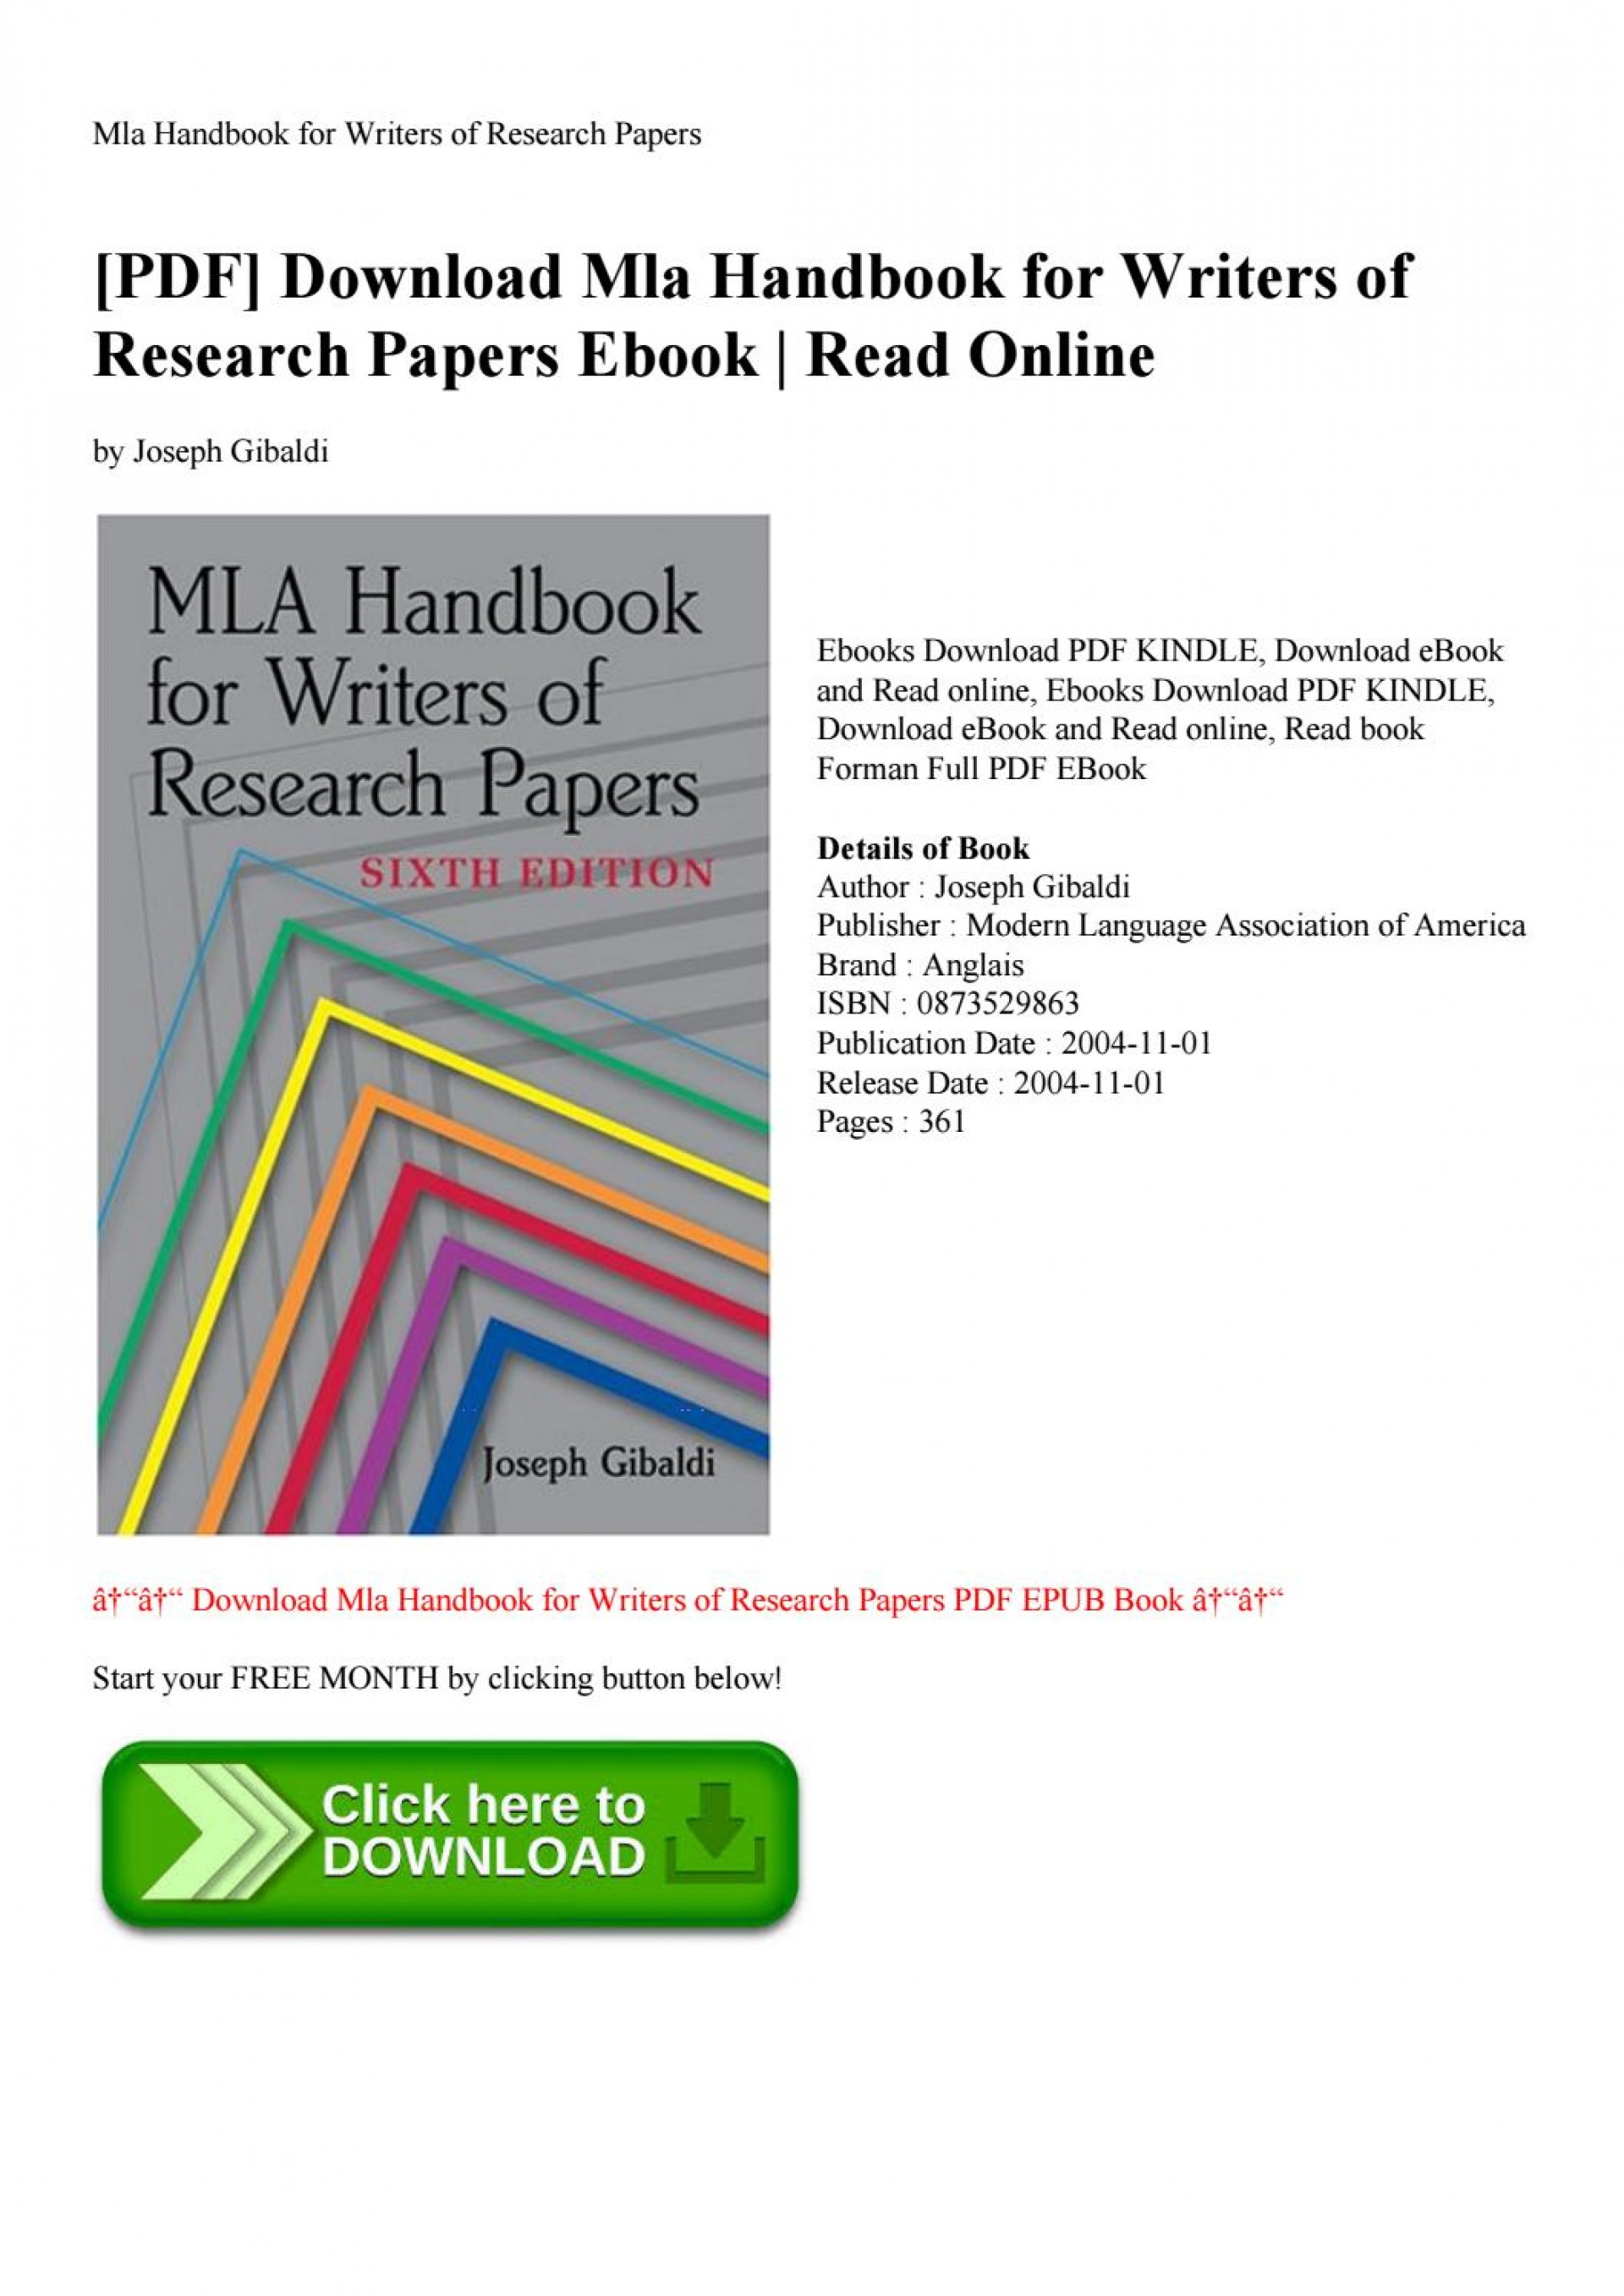 004 Research Paper Page 1 Mla Handbook For Writing Frightening Papers Writers Of 7th Edition Pdf Free Download 2009 Summary 1920